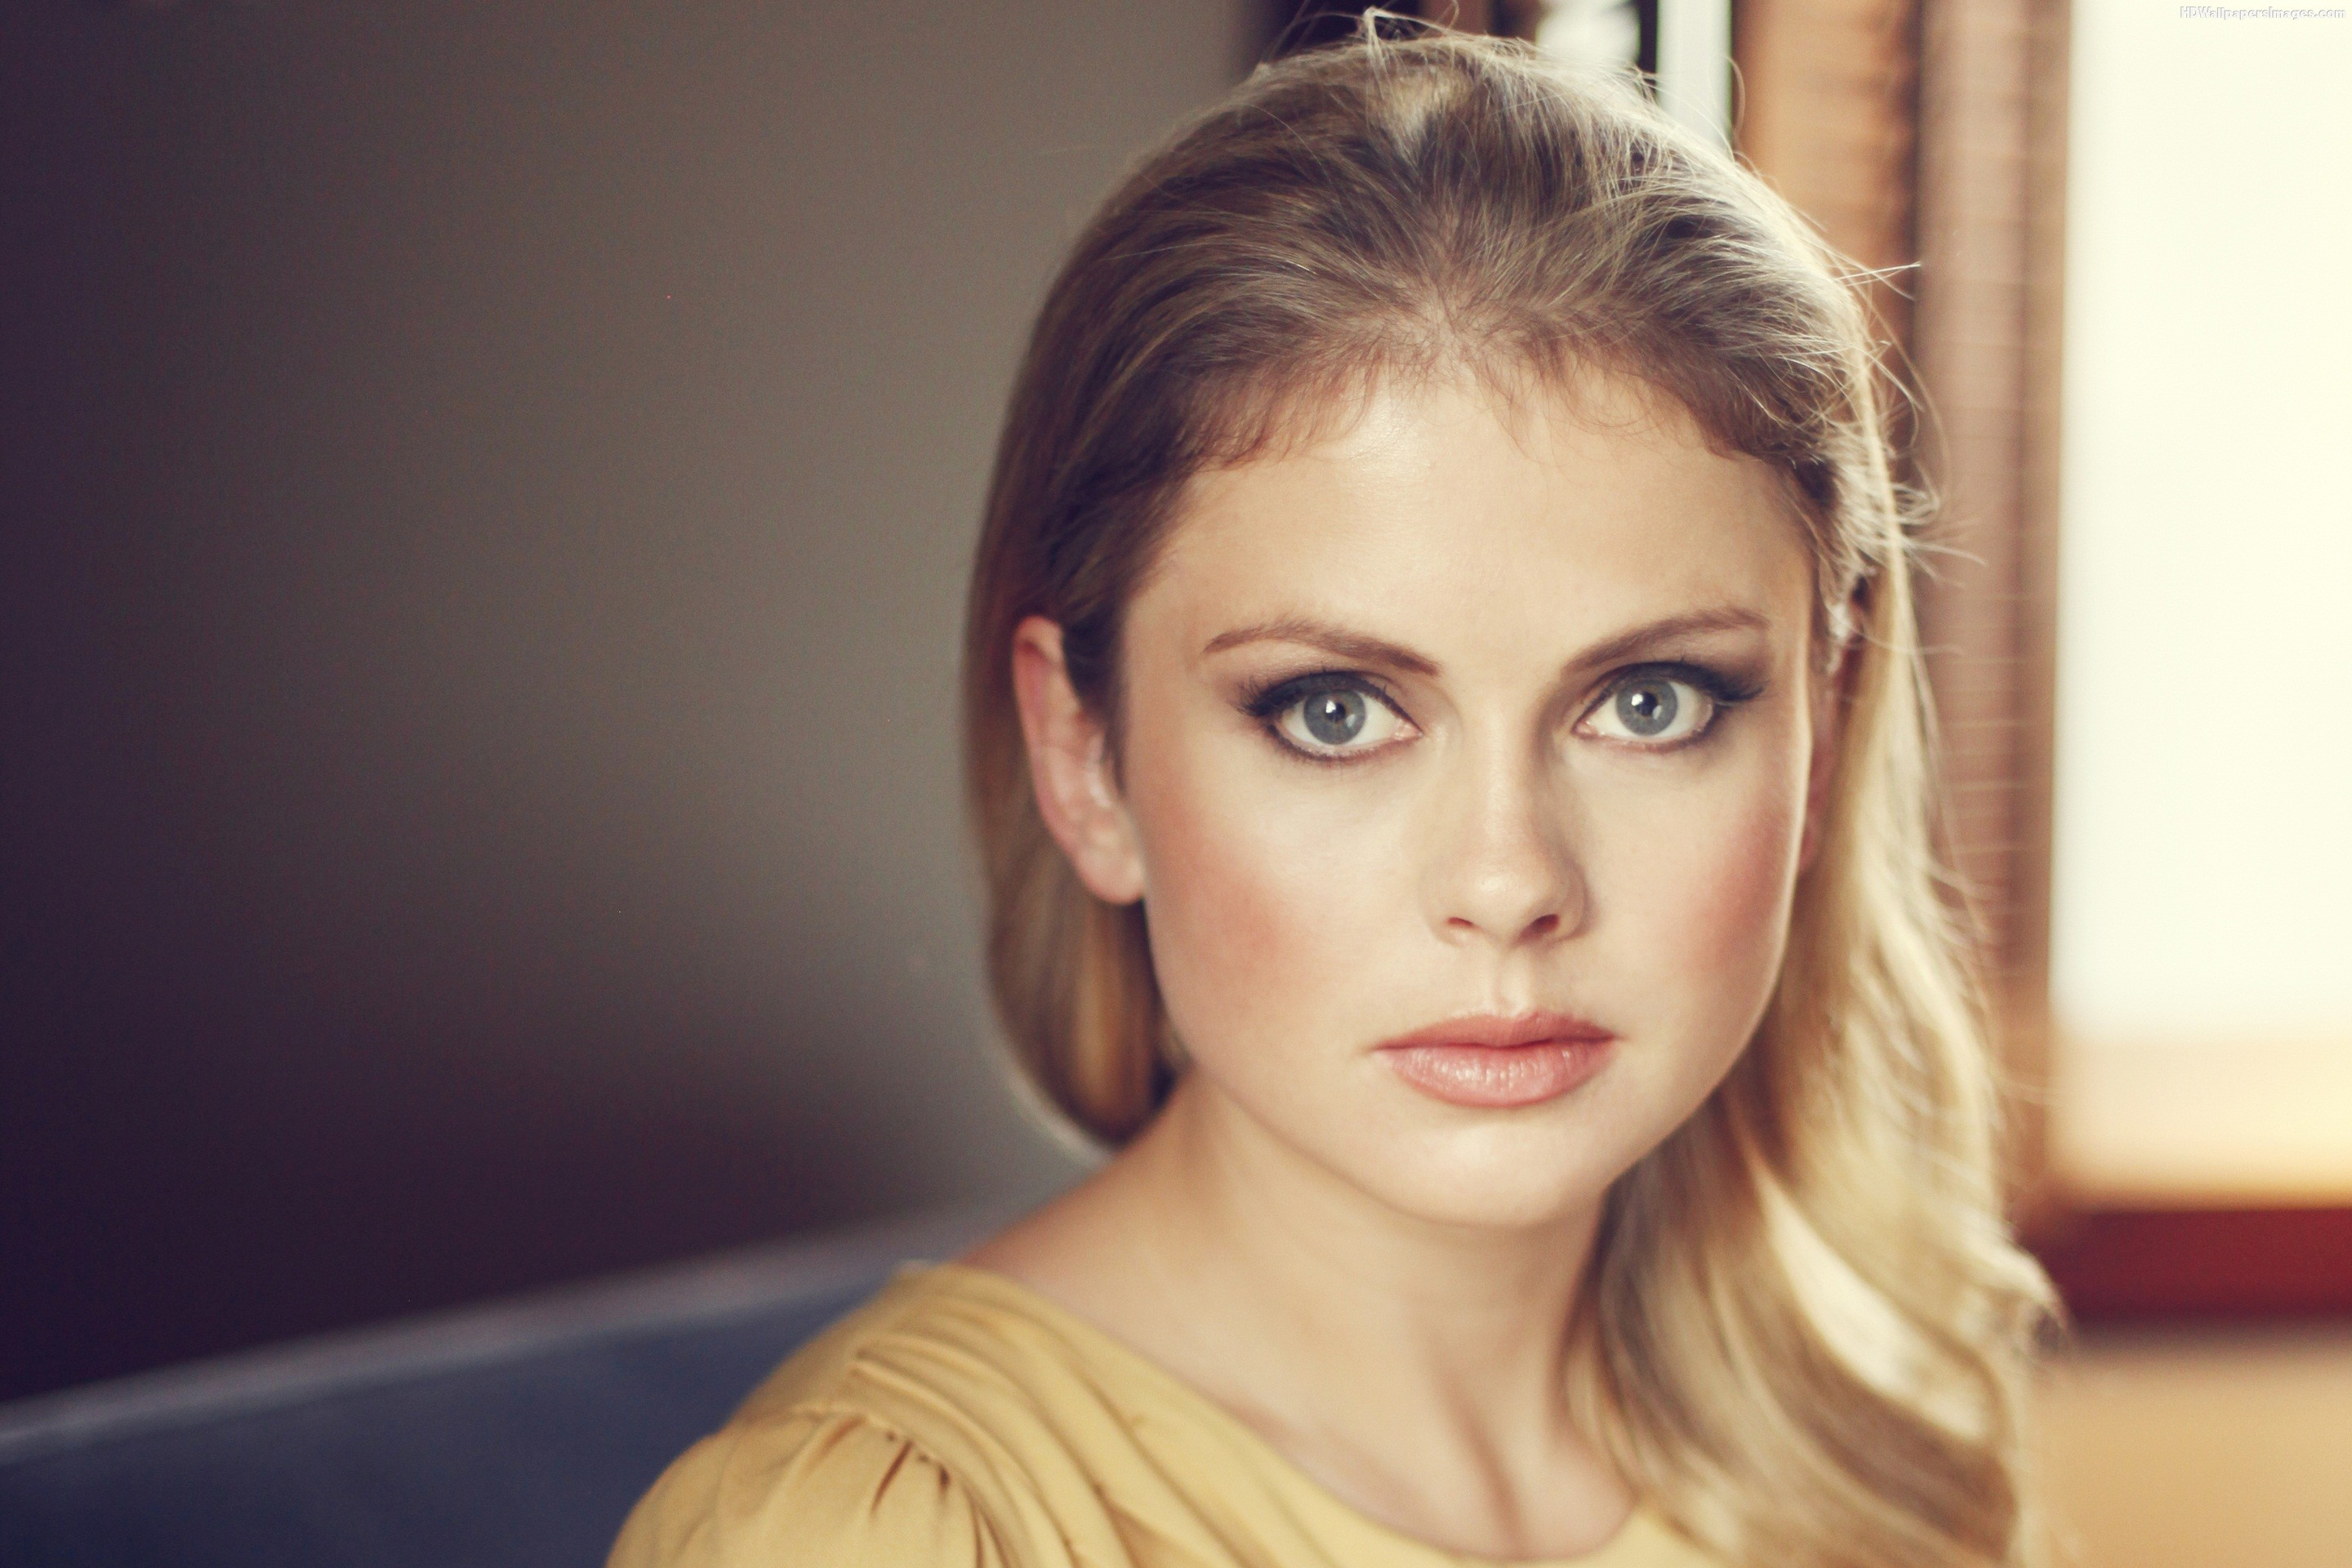 2880x1920 - Rose McIver Wallpapers 12